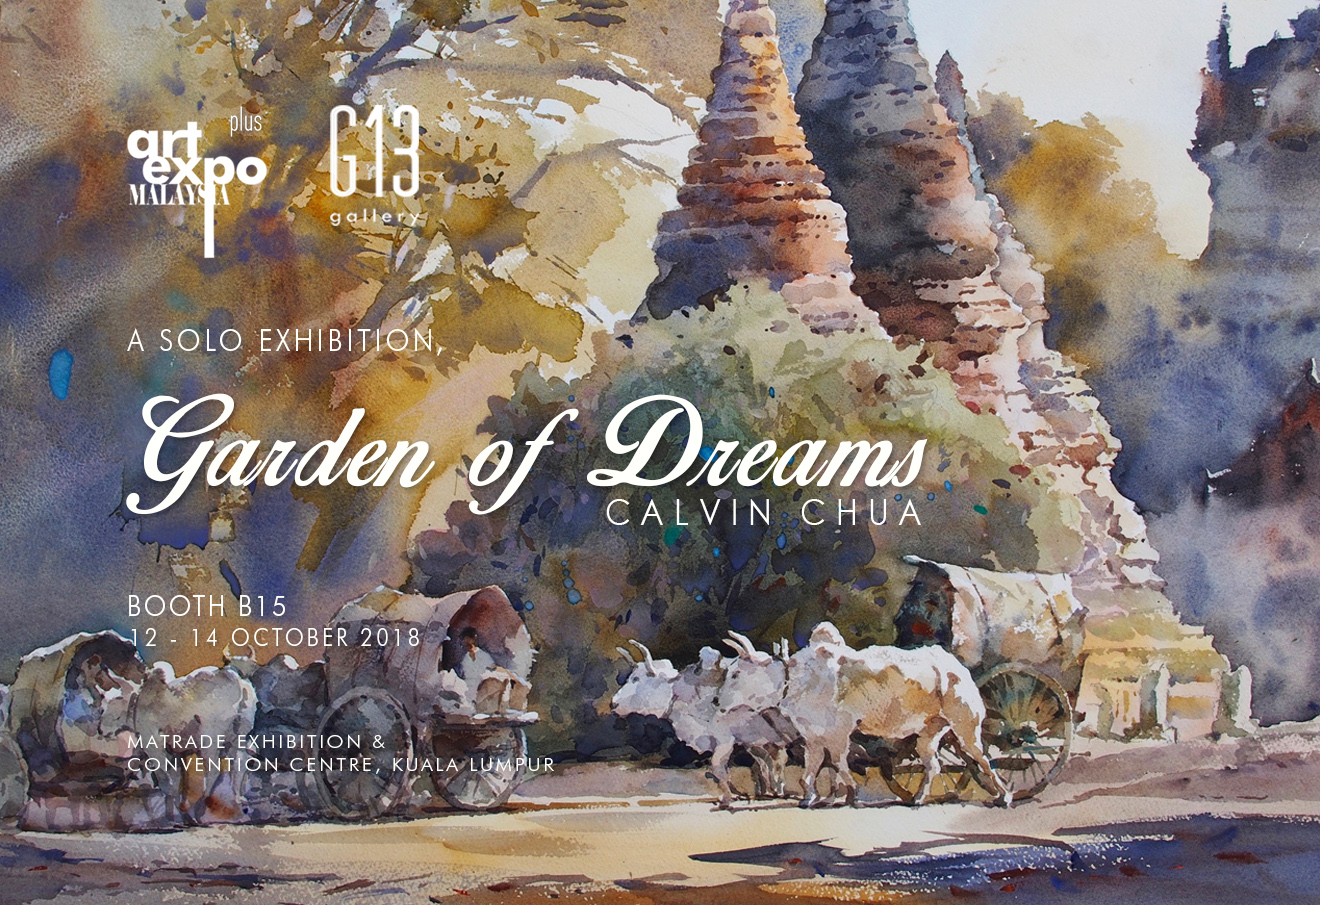 Garden of Dreams, A Solo Exhibition by Calvin Chua @ ART EXPO MALAYSIA 2018